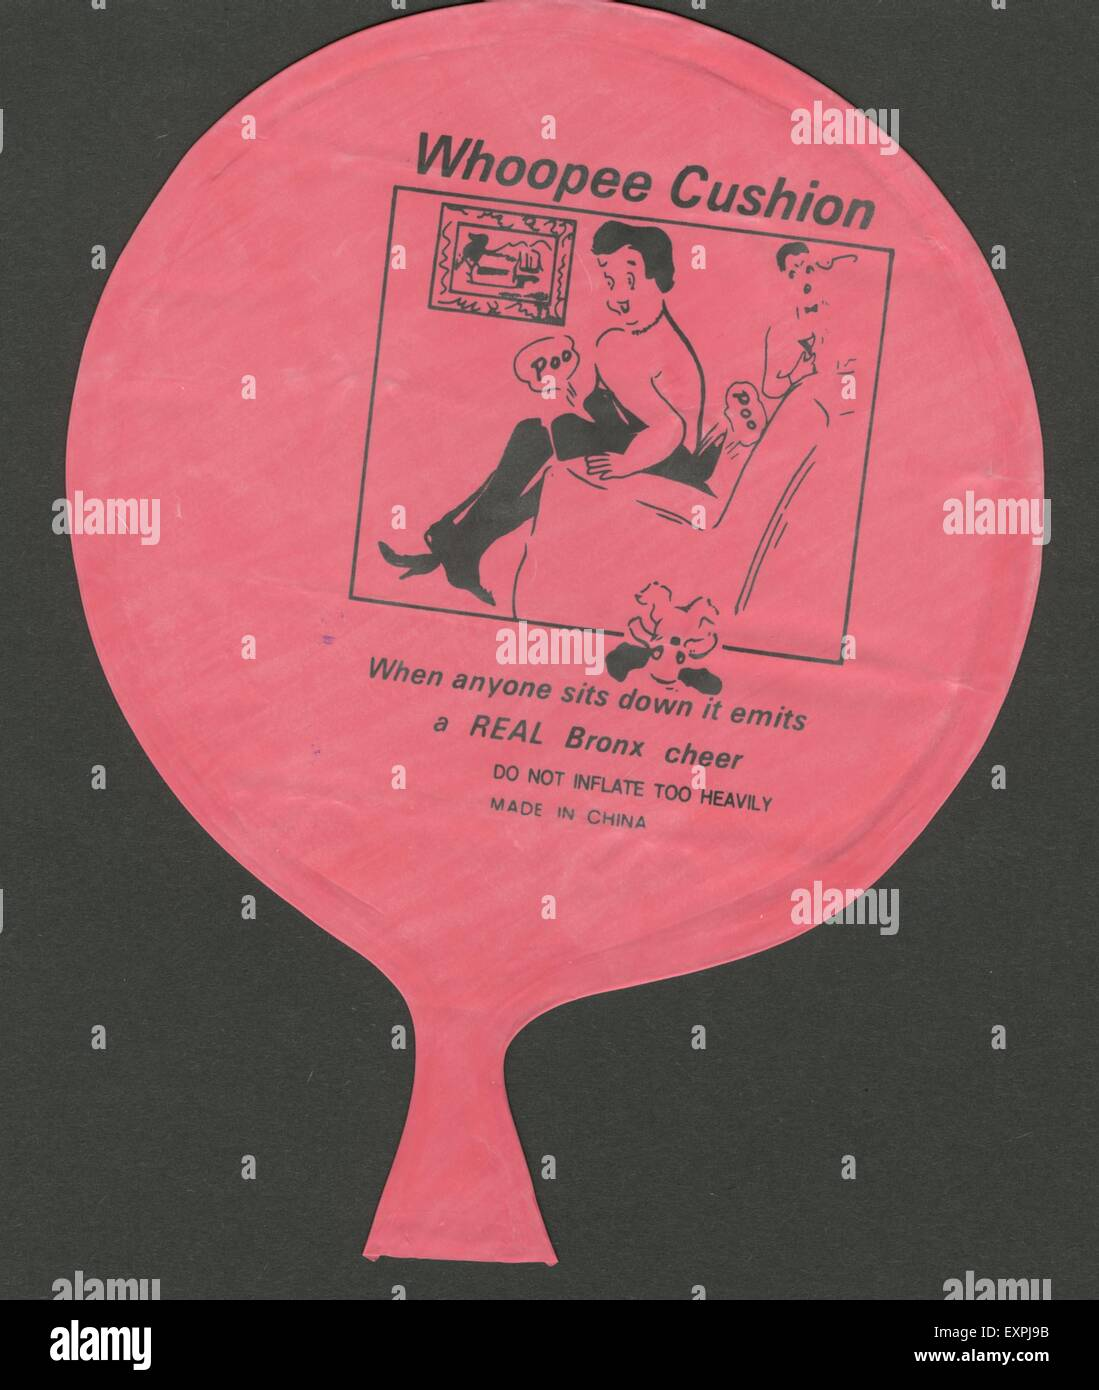 1960s UK Whoopee Cushions Packaging - Stock Image